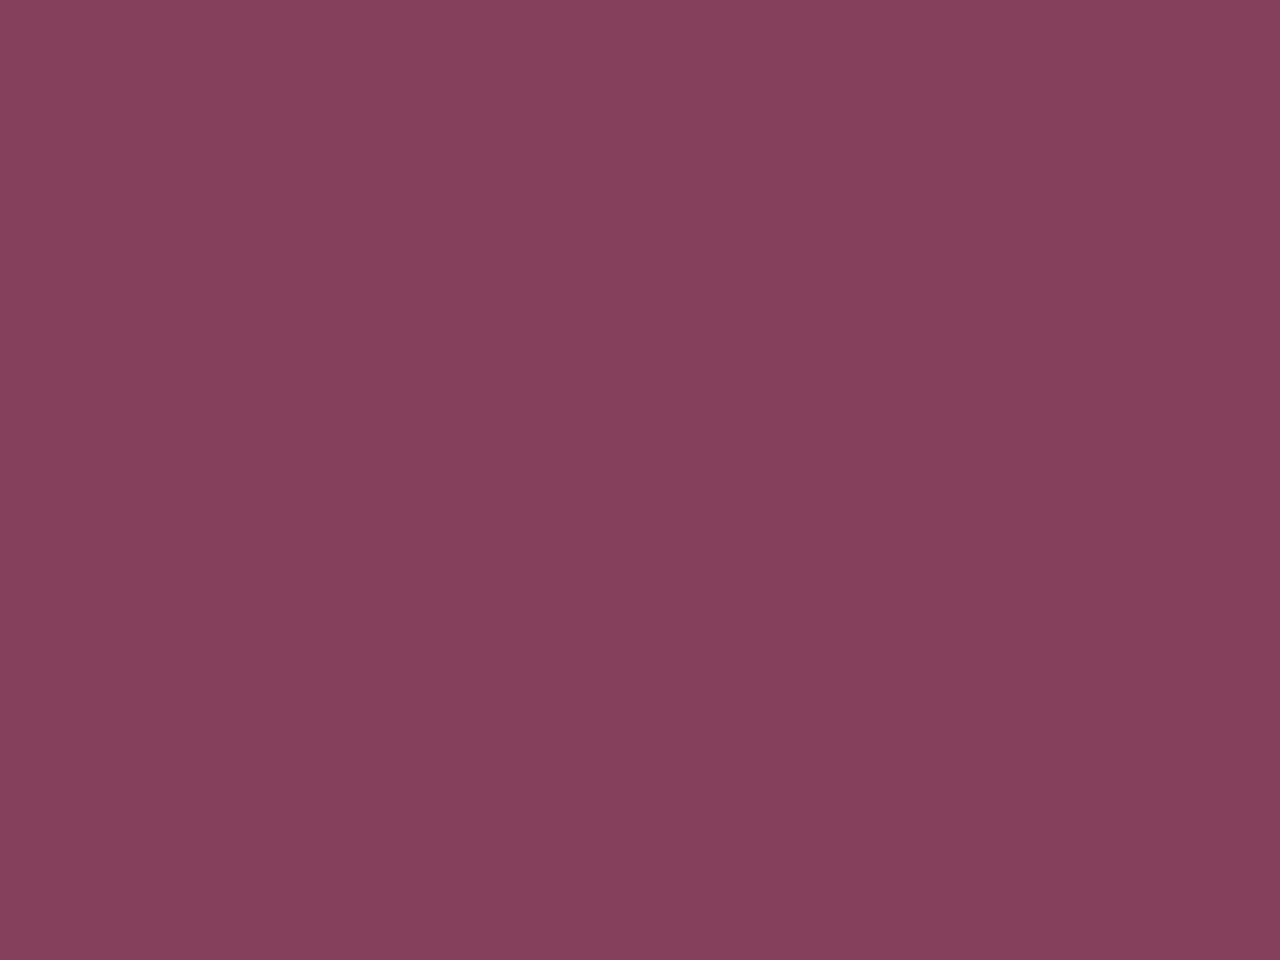 1280x960 Deep Ruby Solid Color Background